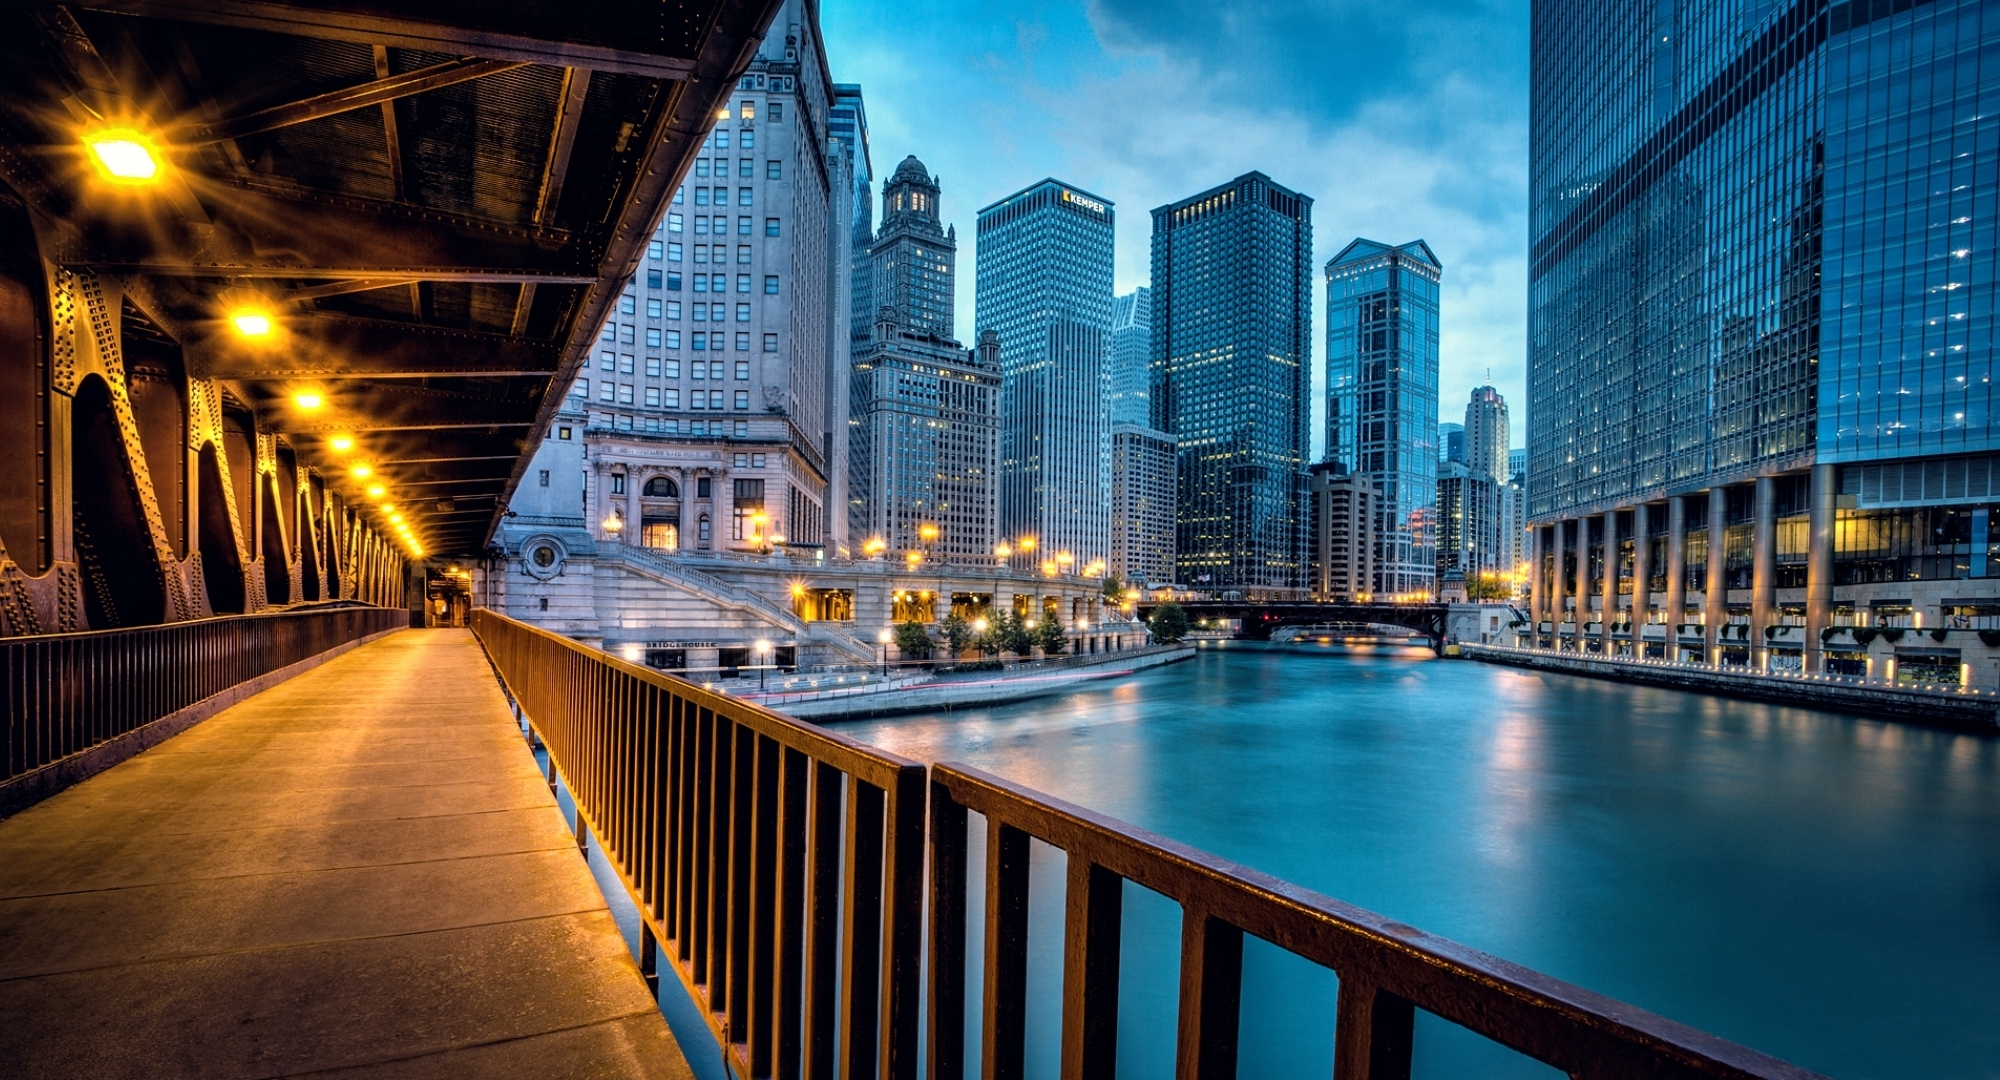 89995 download wallpaper Cities, Houses, Rivers, Usa, City, Building, Shine, Light, Road, Skyscrapers, Bridge, Illumination, Evening, United States, Lighting, Chicago, Illinois, Llinois screensavers and pictures for free